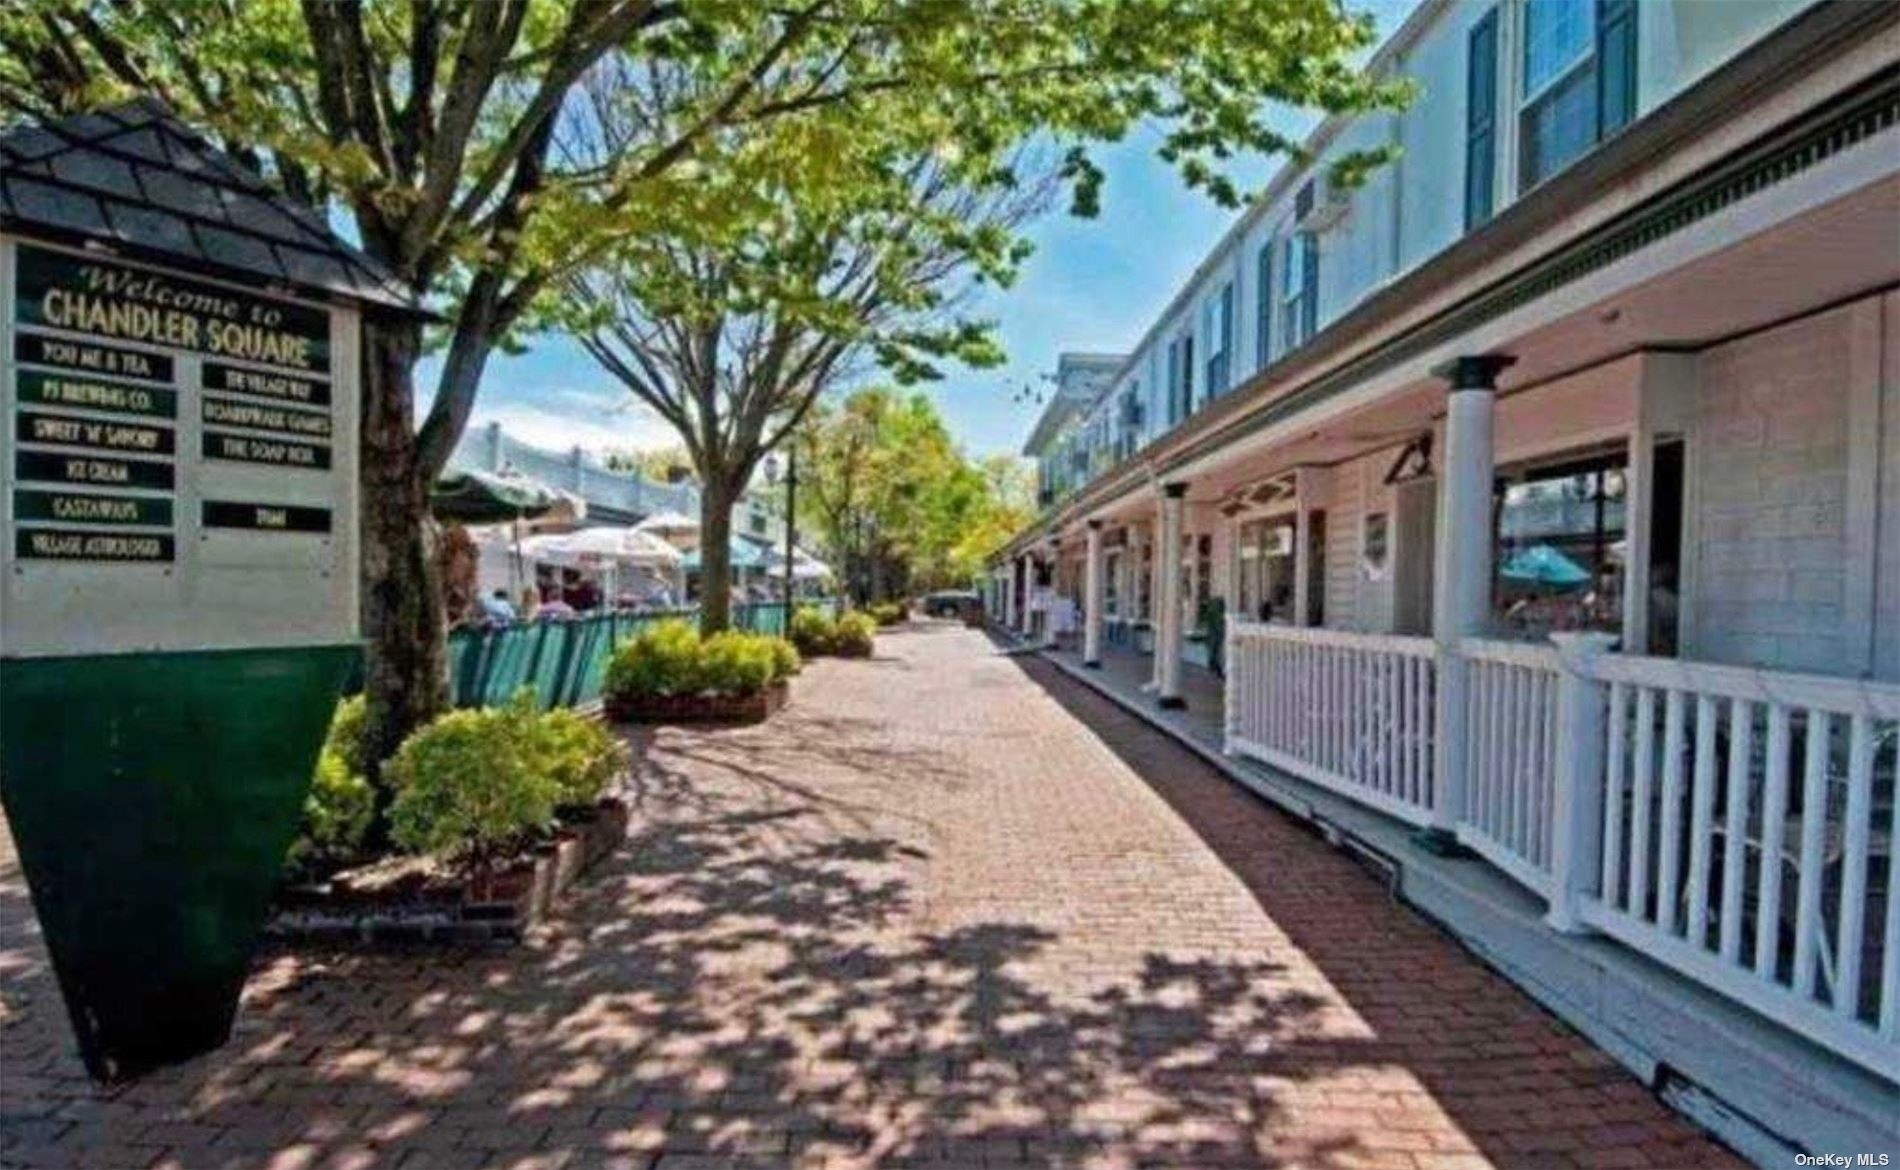 Rentals at 30 Chandler Square, 7 Port Jefferson, NY 11777